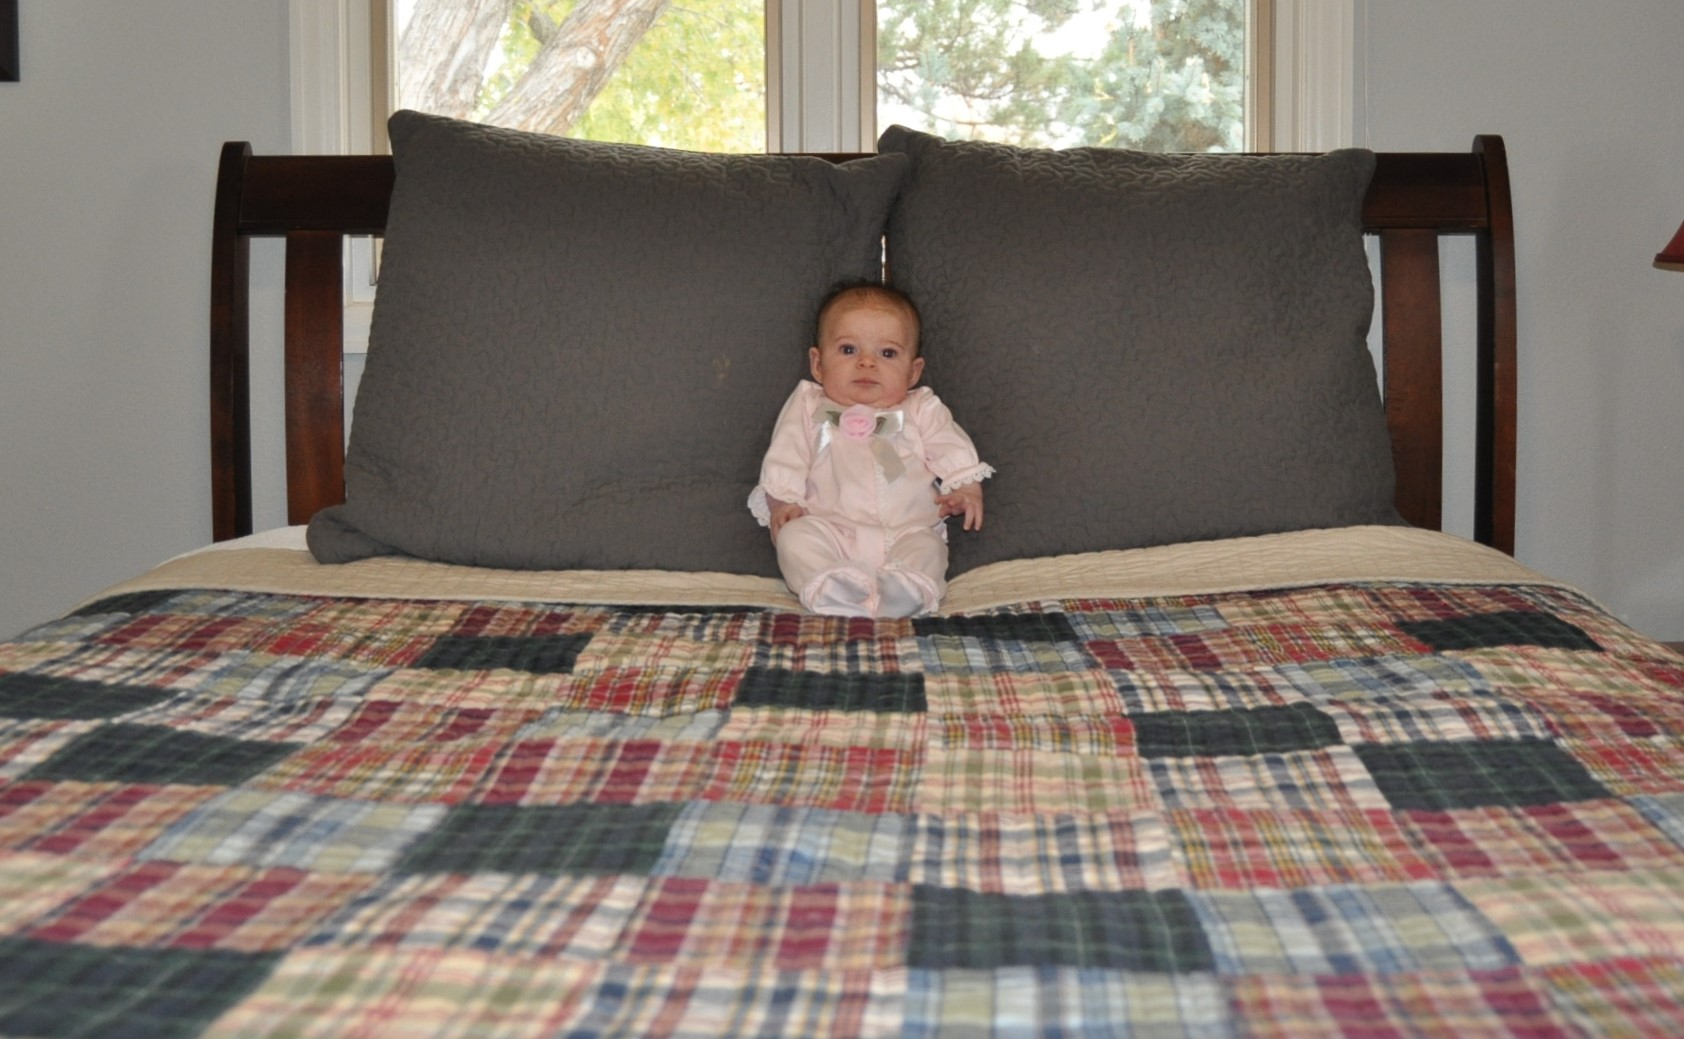 Tommy Hilfiger bedding and a cute little baby doll to snuggle named Evie Mae.